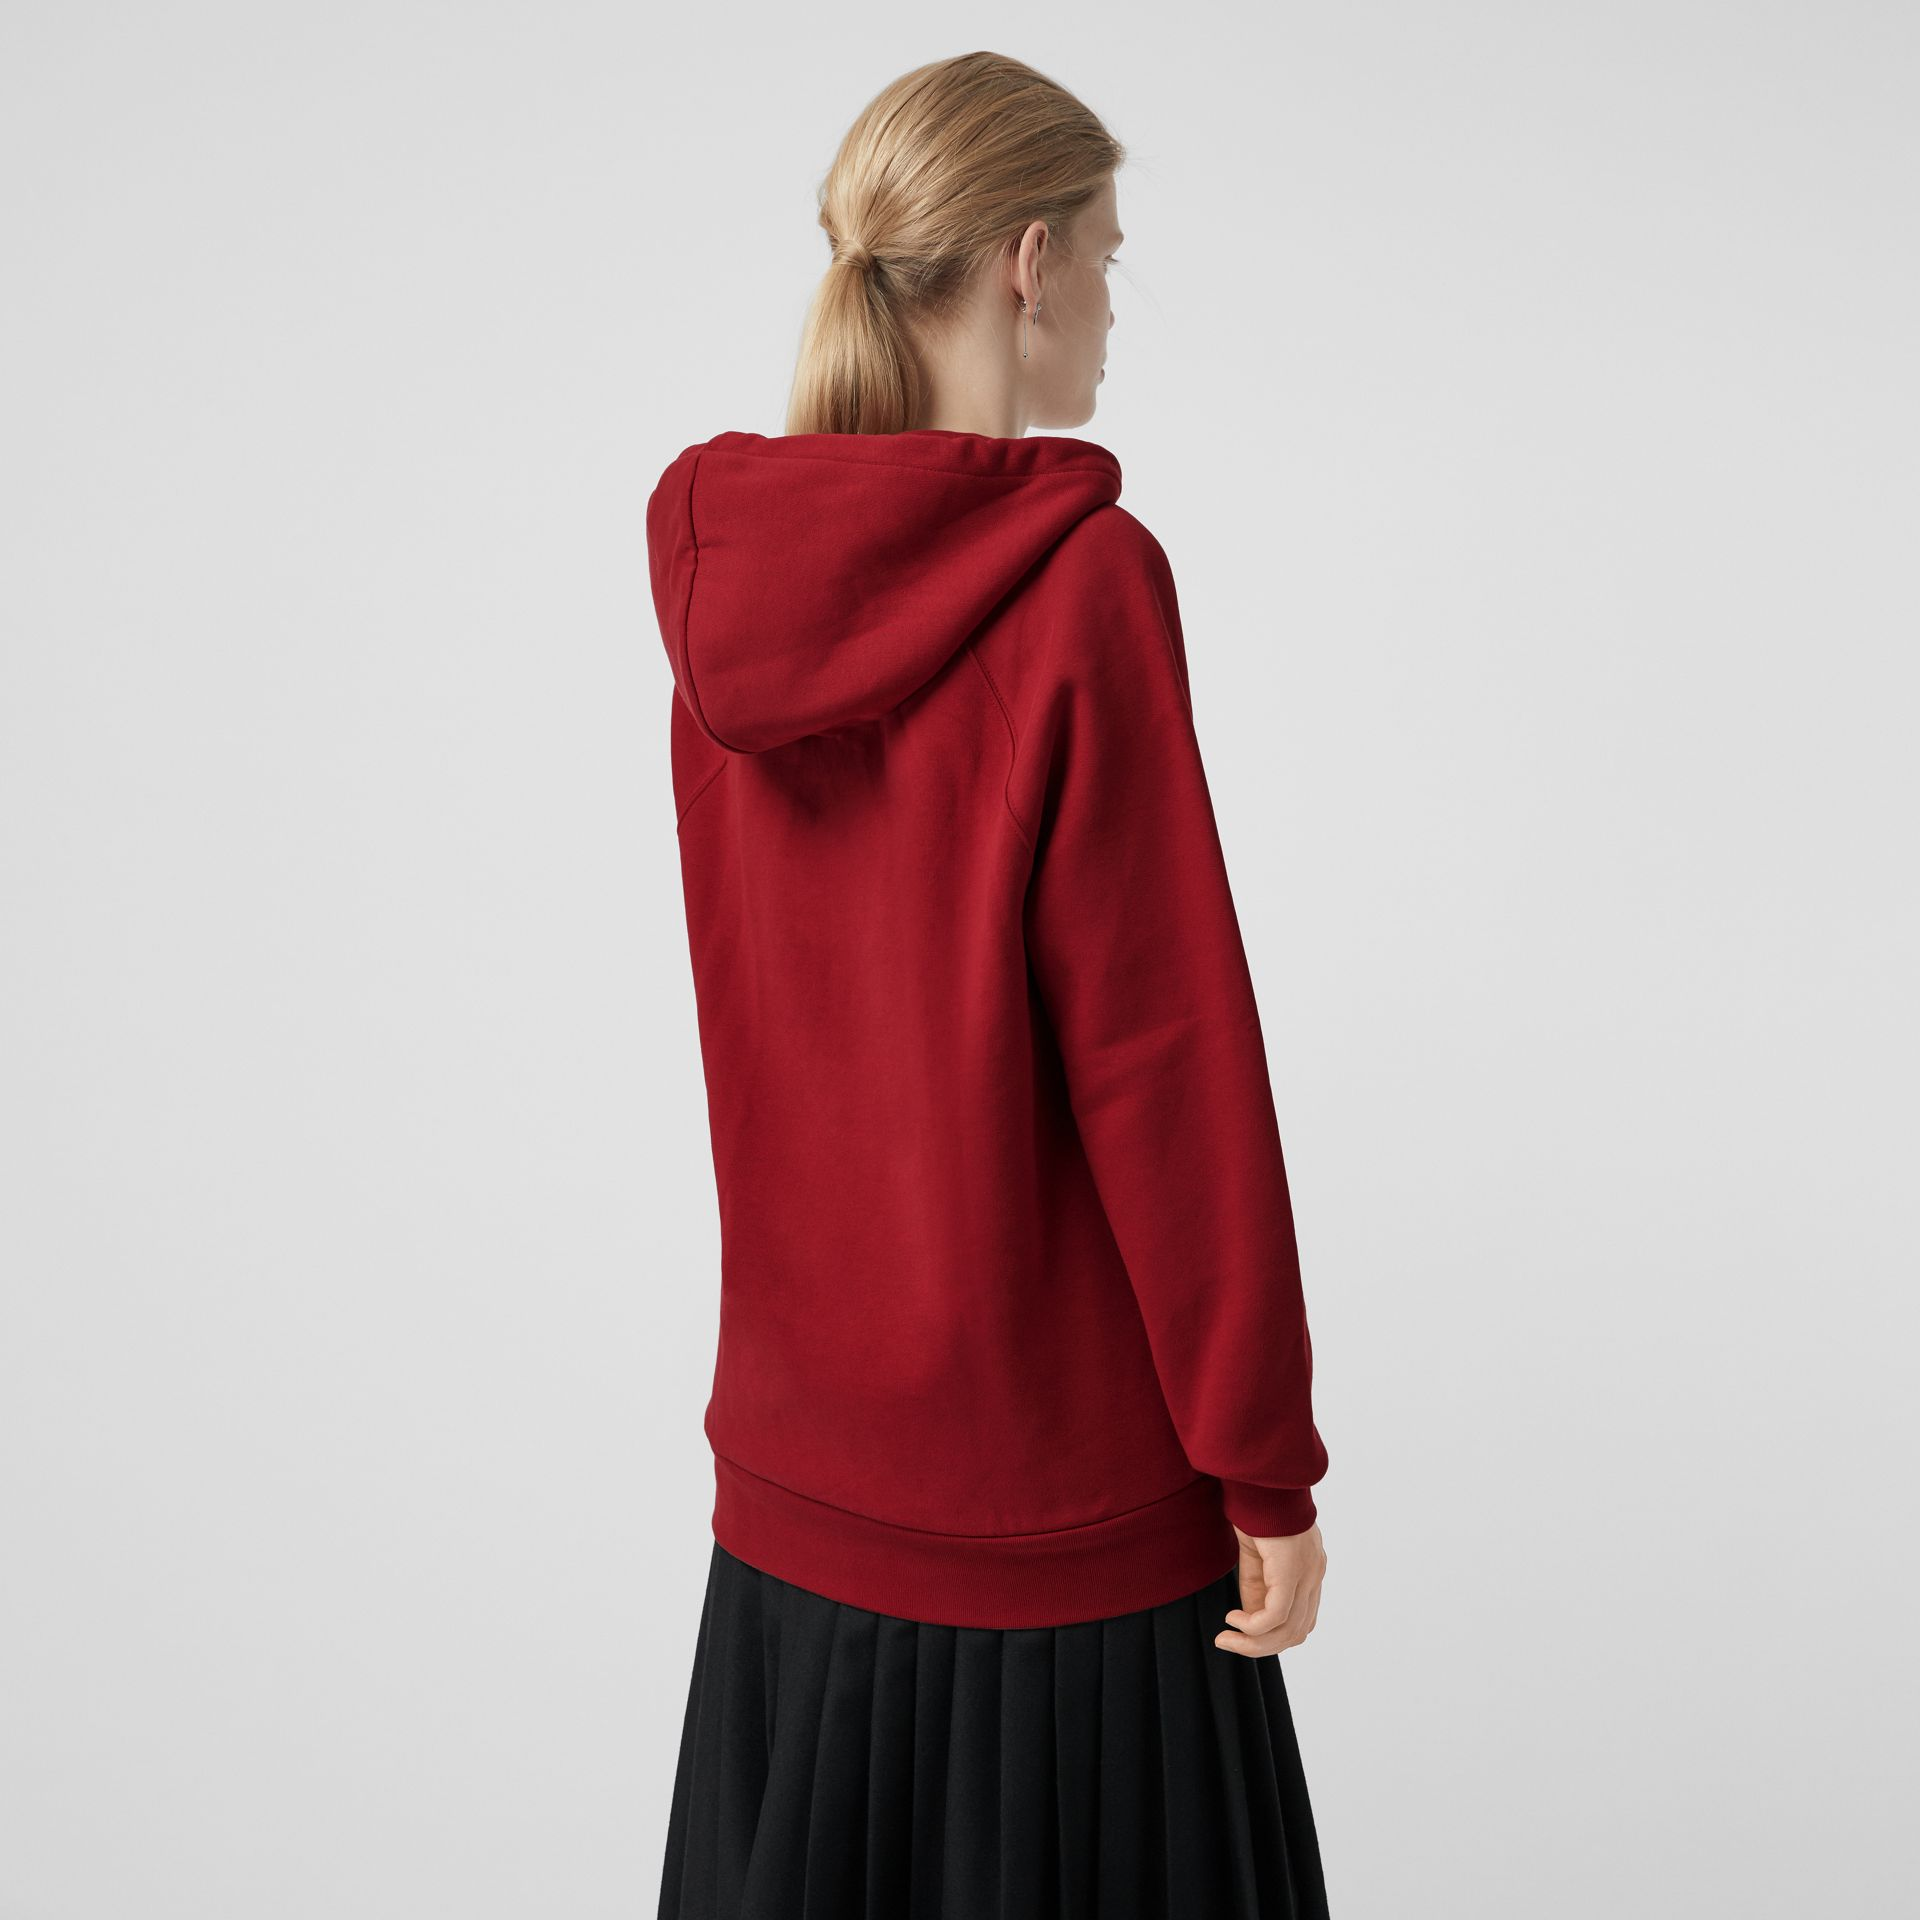 Embroidered Hooded Sweatshirt in Parade Red - Women | Burberry Hong Kong - gallery image 2